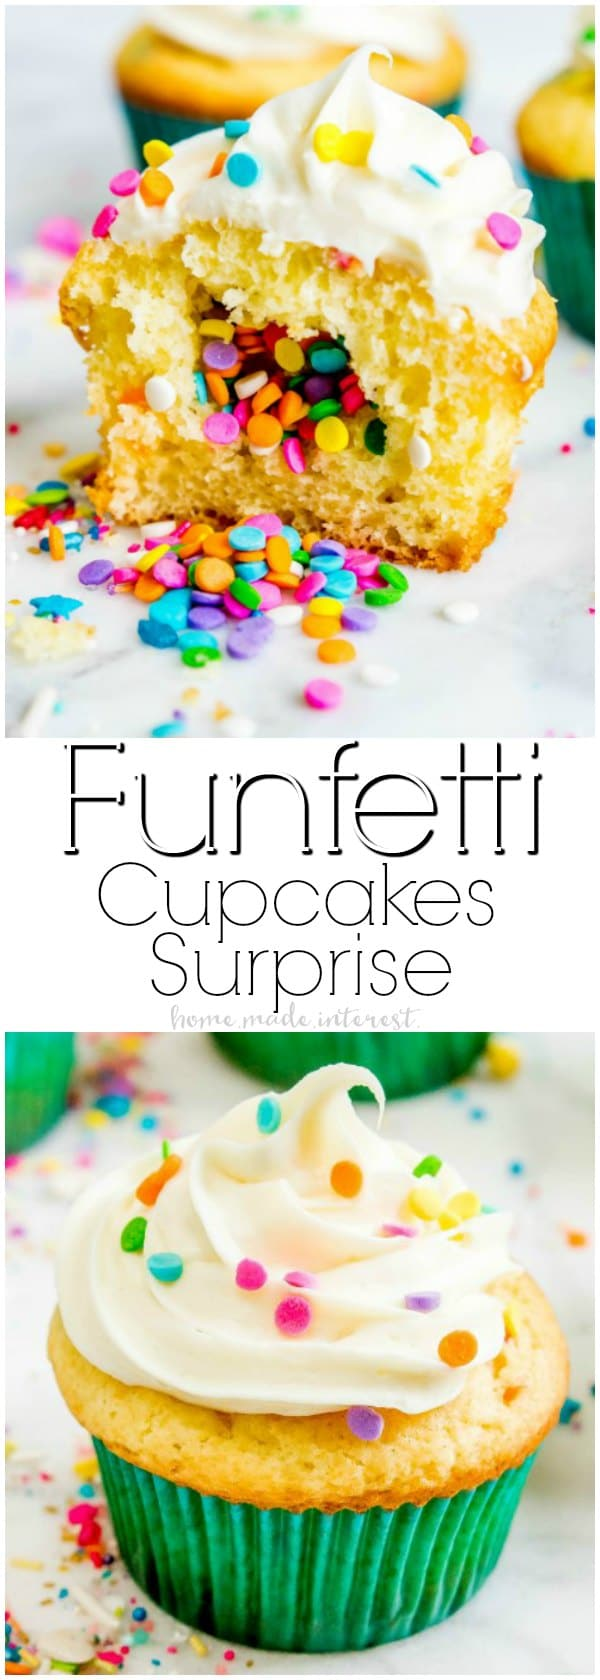 Funfetti Cupcake Surprise | These Funfetti Cupcakes are filled with an extra special surprise that kids are going to love. This simple Funfetti recipe starts with yellow cake mix and ends with a cupcake filled with rainbow sprinkles. Make this easy funfetti cupcake recipe for your family and enjoy the smiles on their faces!